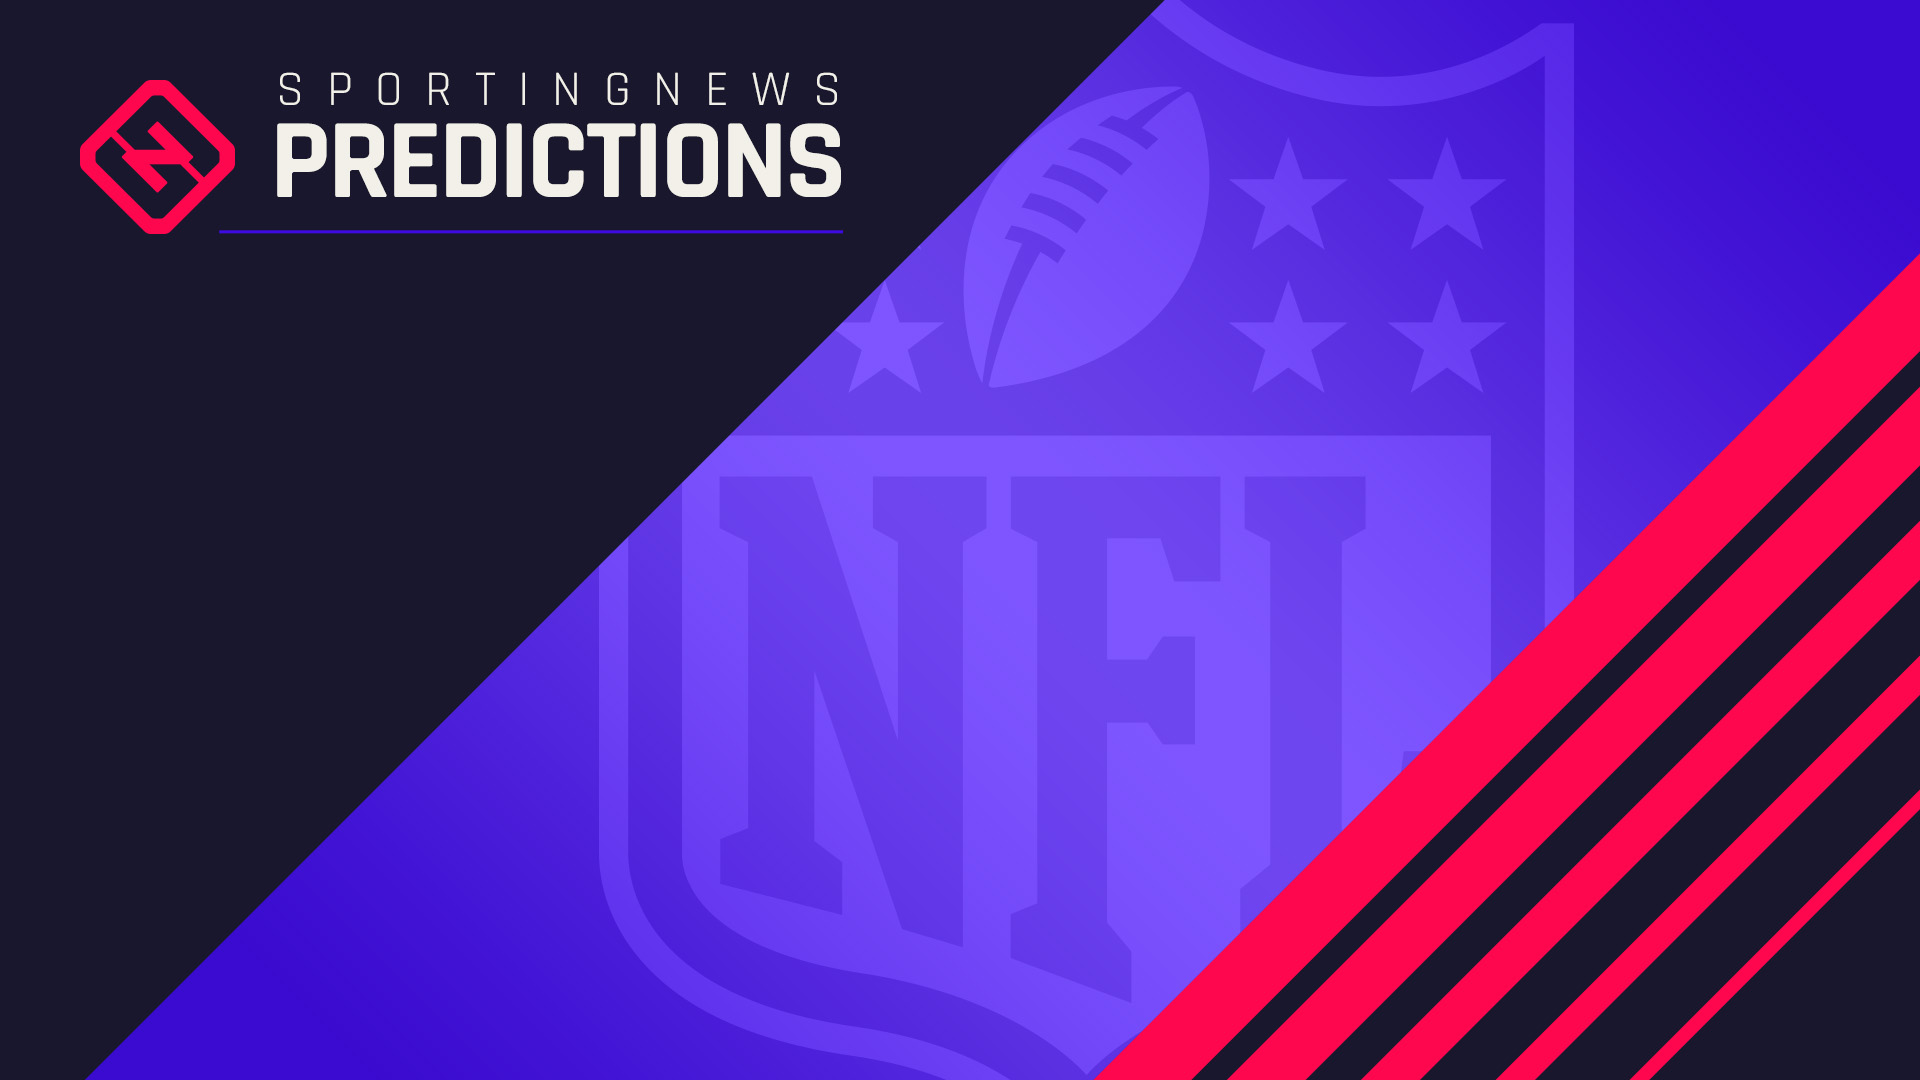 NFL predictions for 2017: Final standings, playoff